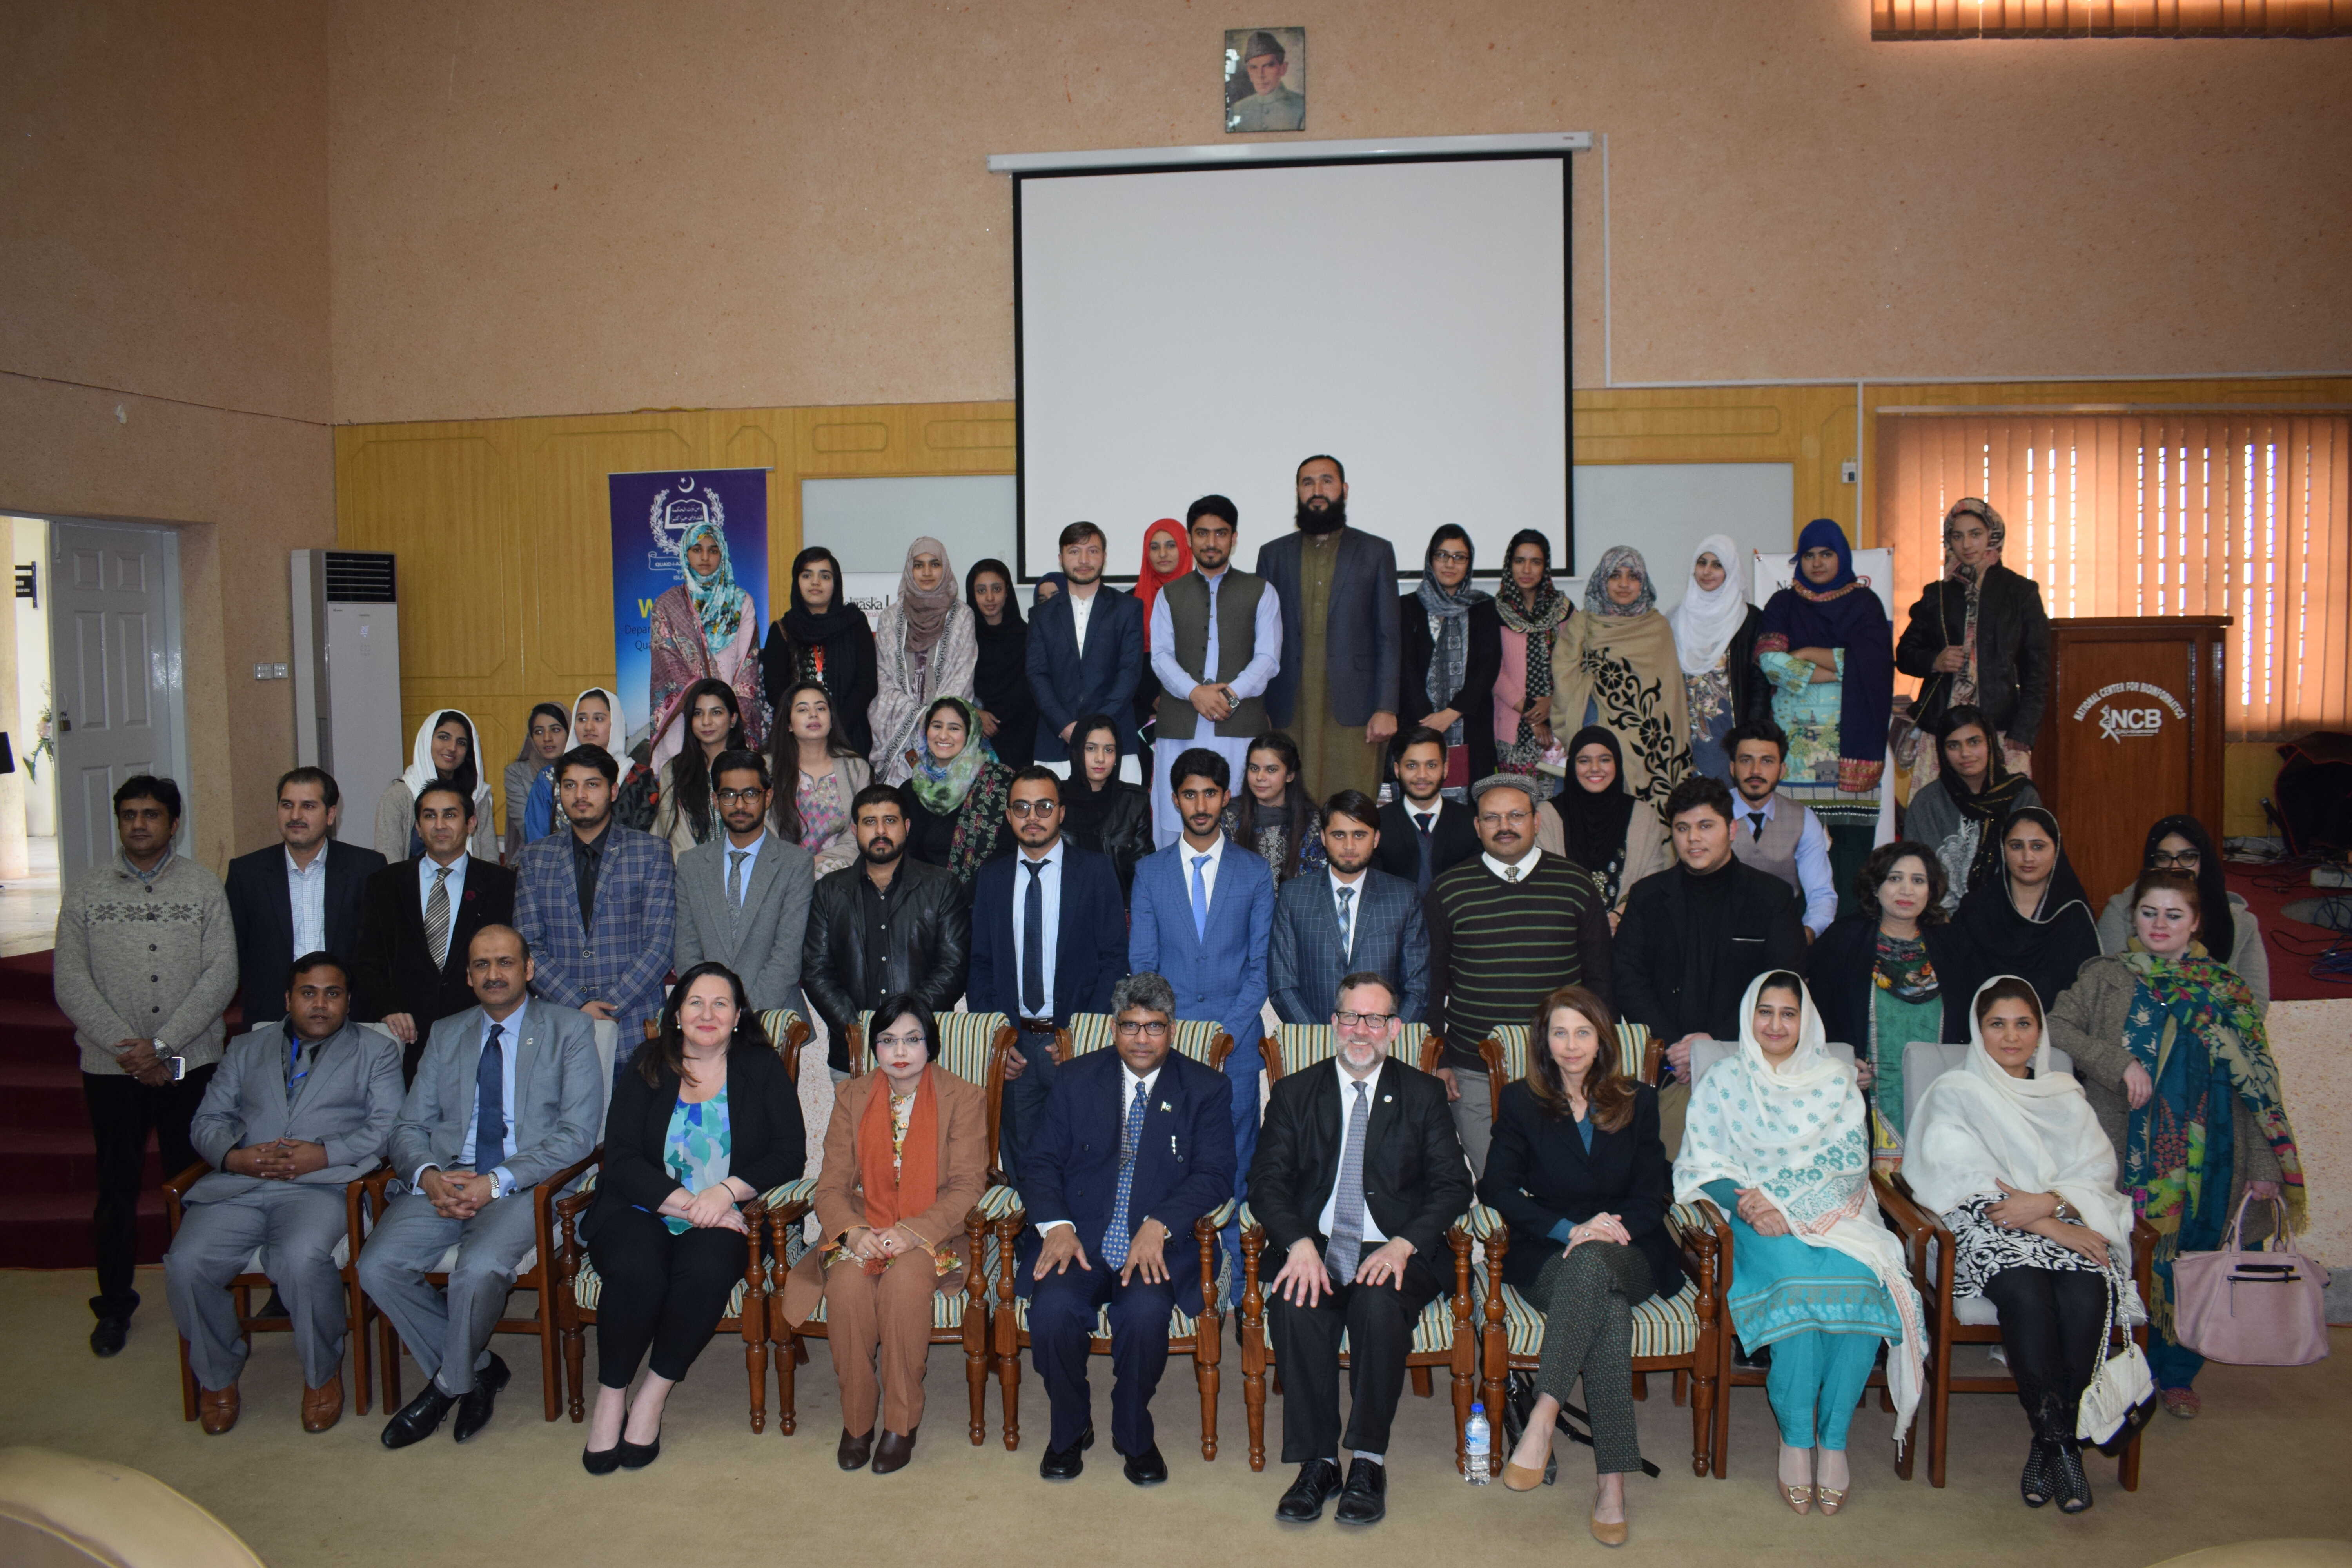 University of Sialkot and University of Nebraska USA - working groups closer to making dreams of students and faculty come true. Vice Chancellor USKT Prof. Dr. Ijaz A. Qureshi, Director Social Sciences Prof. Dr Farhat Jabeen, Faculty and Students participated in a session at Quaid e Azam University Islamabad to promote social entrepreneur culture.